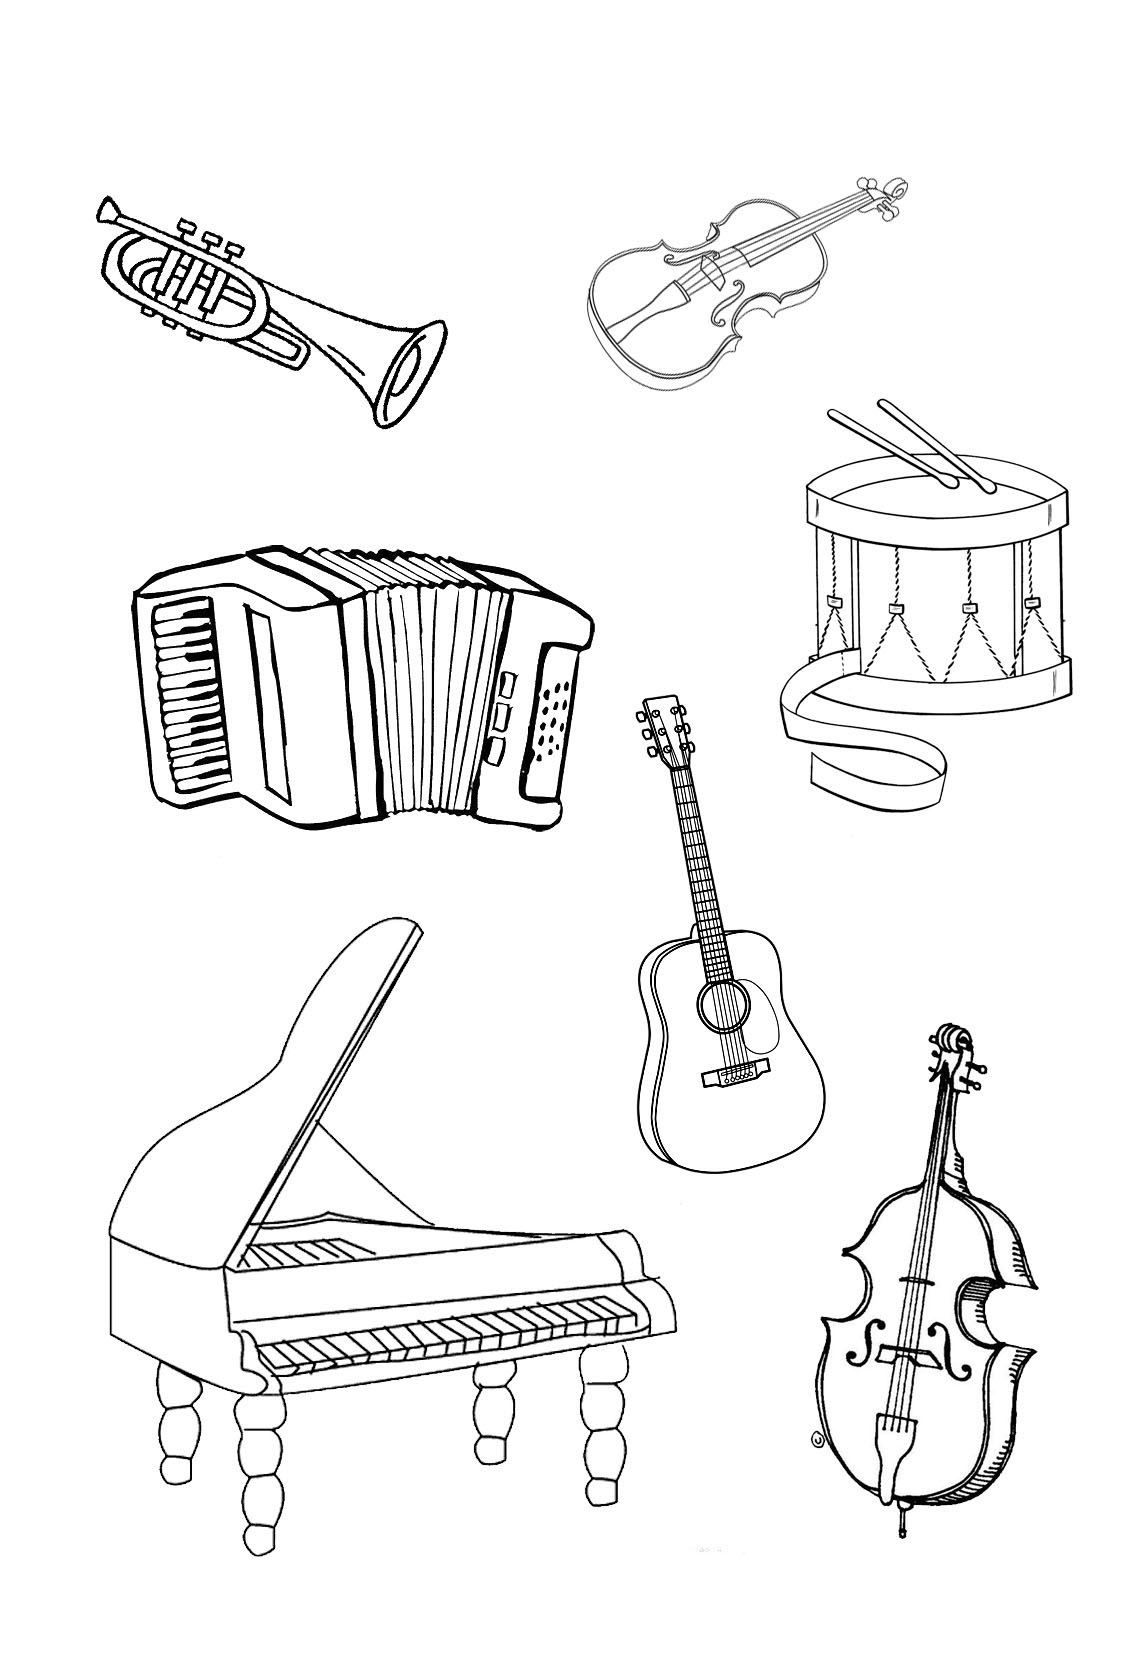 Musical Instruments Coloring Pages To Download And Print